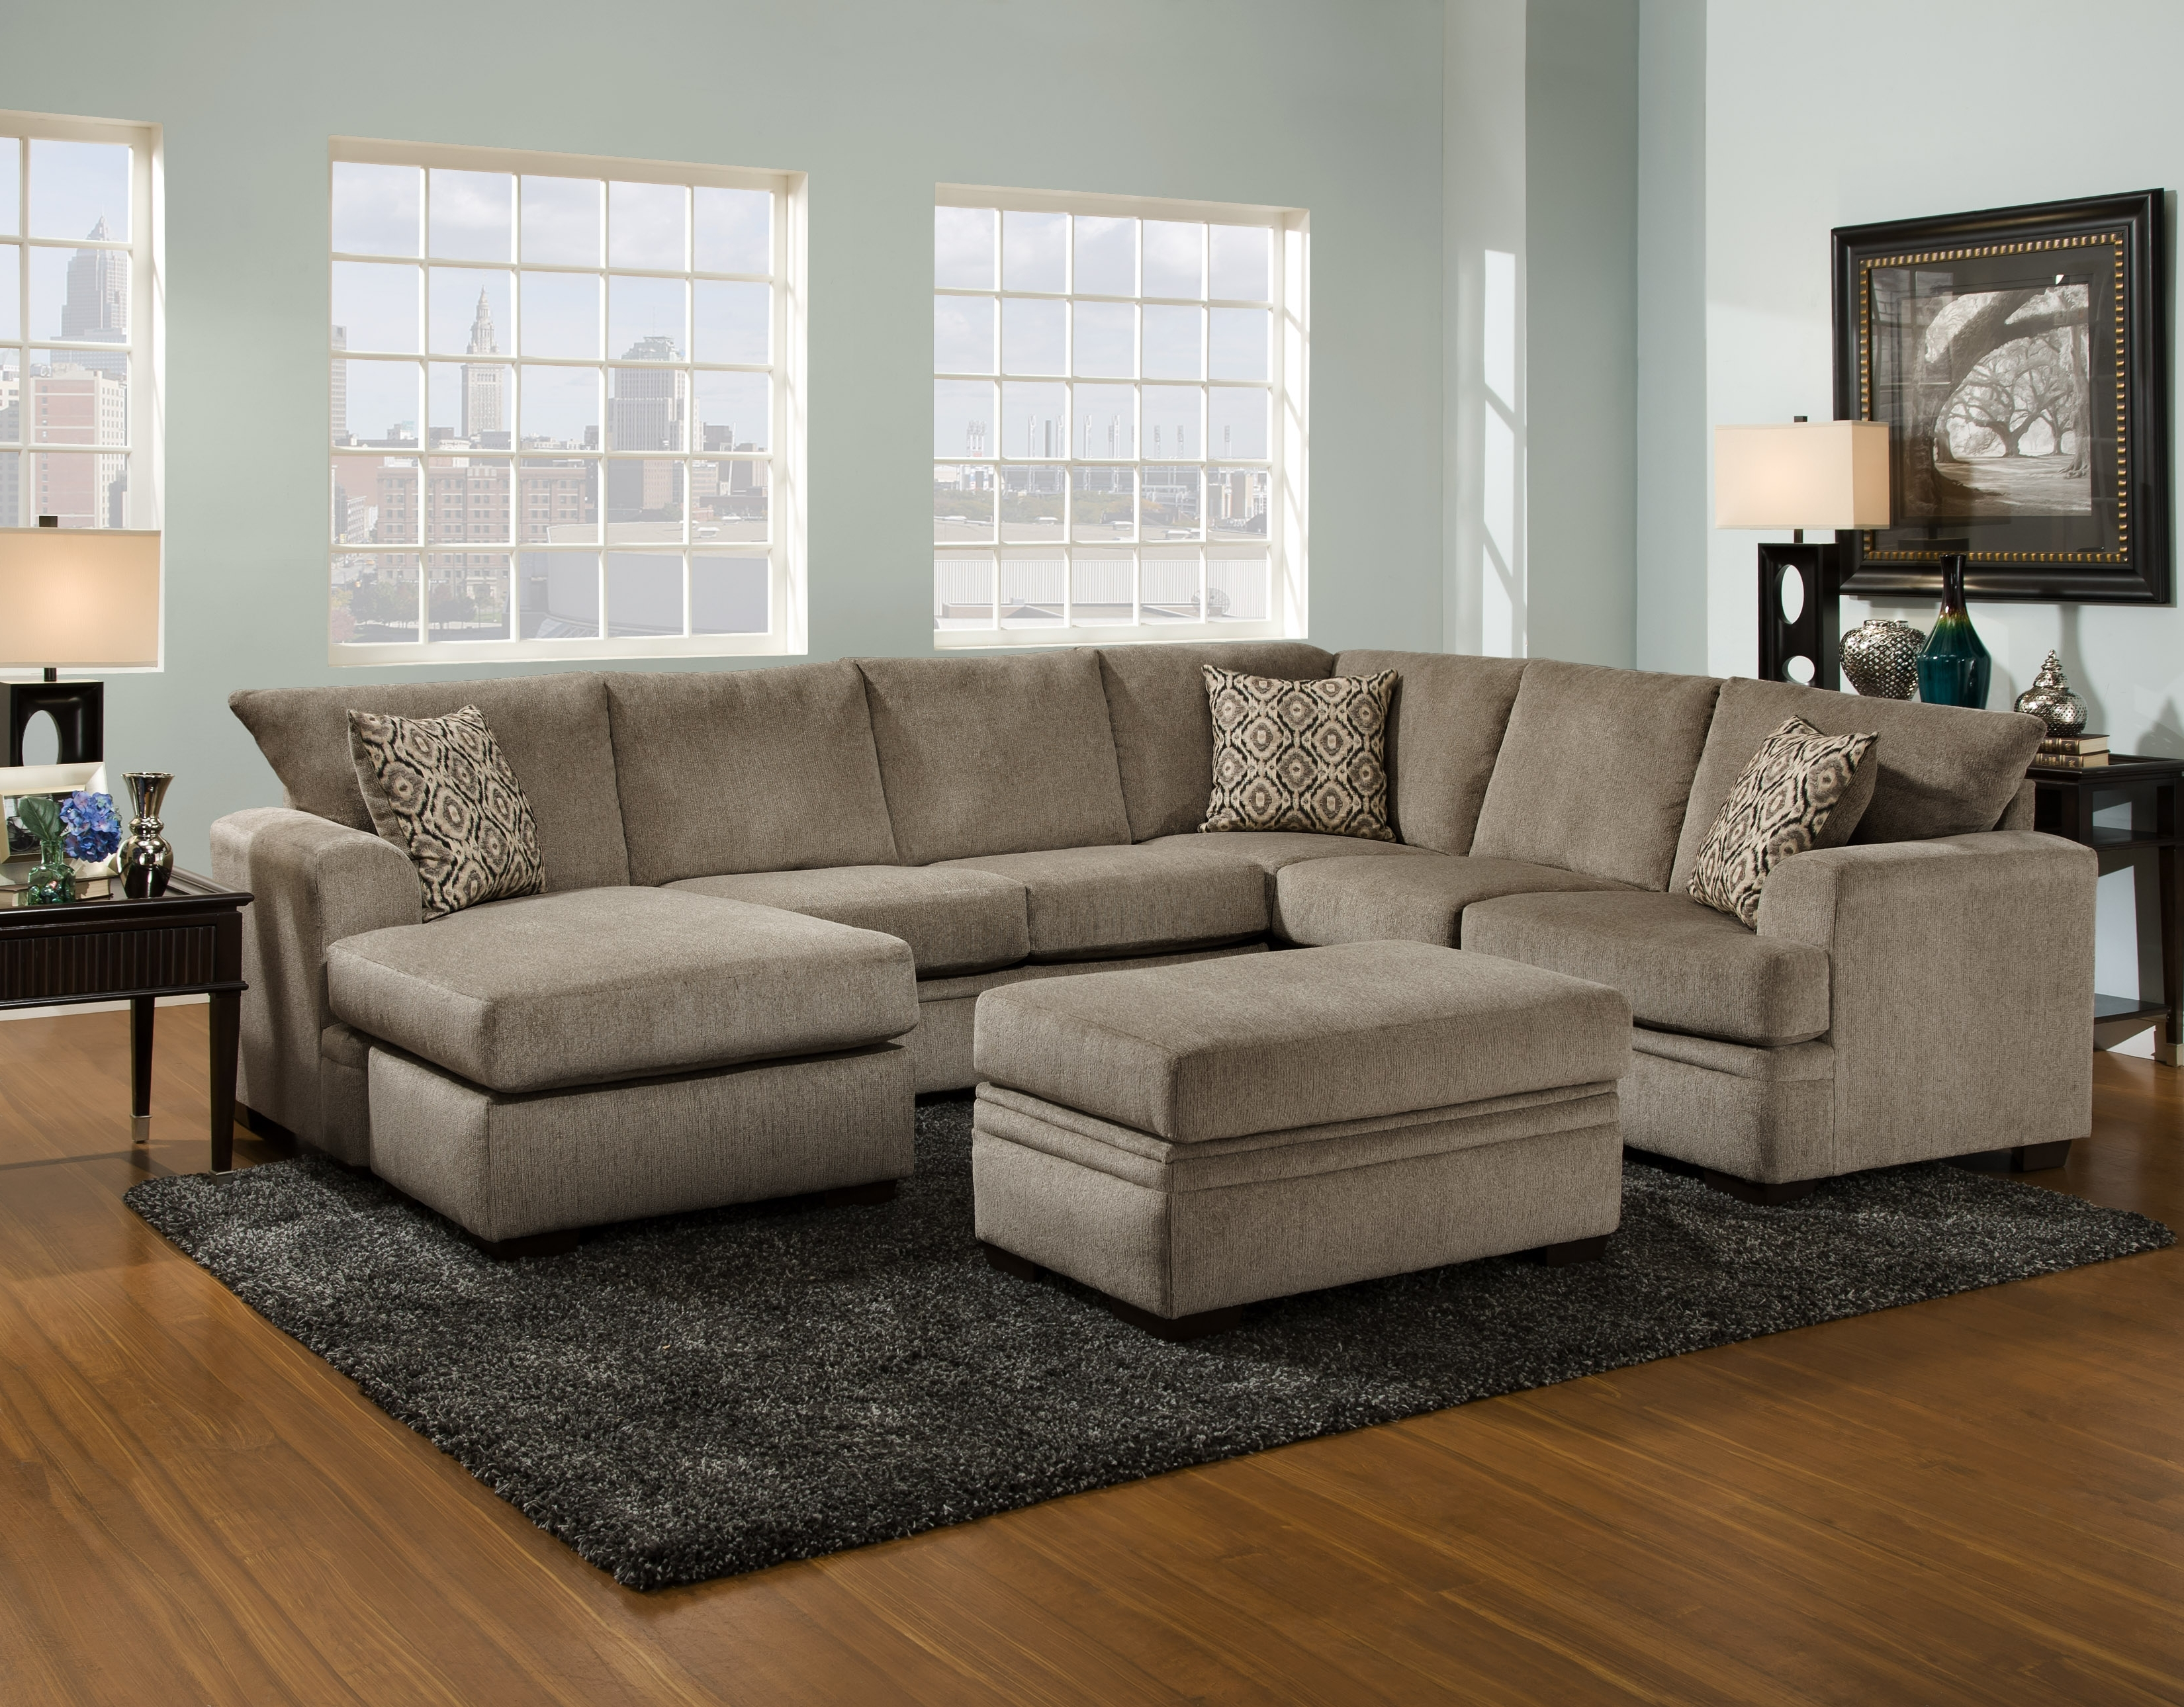 Living Room Furniture – Vaughn's Home Furnishings Pertaining To Most Popular Vaughan Sectional Sofas (View 7 of 15)